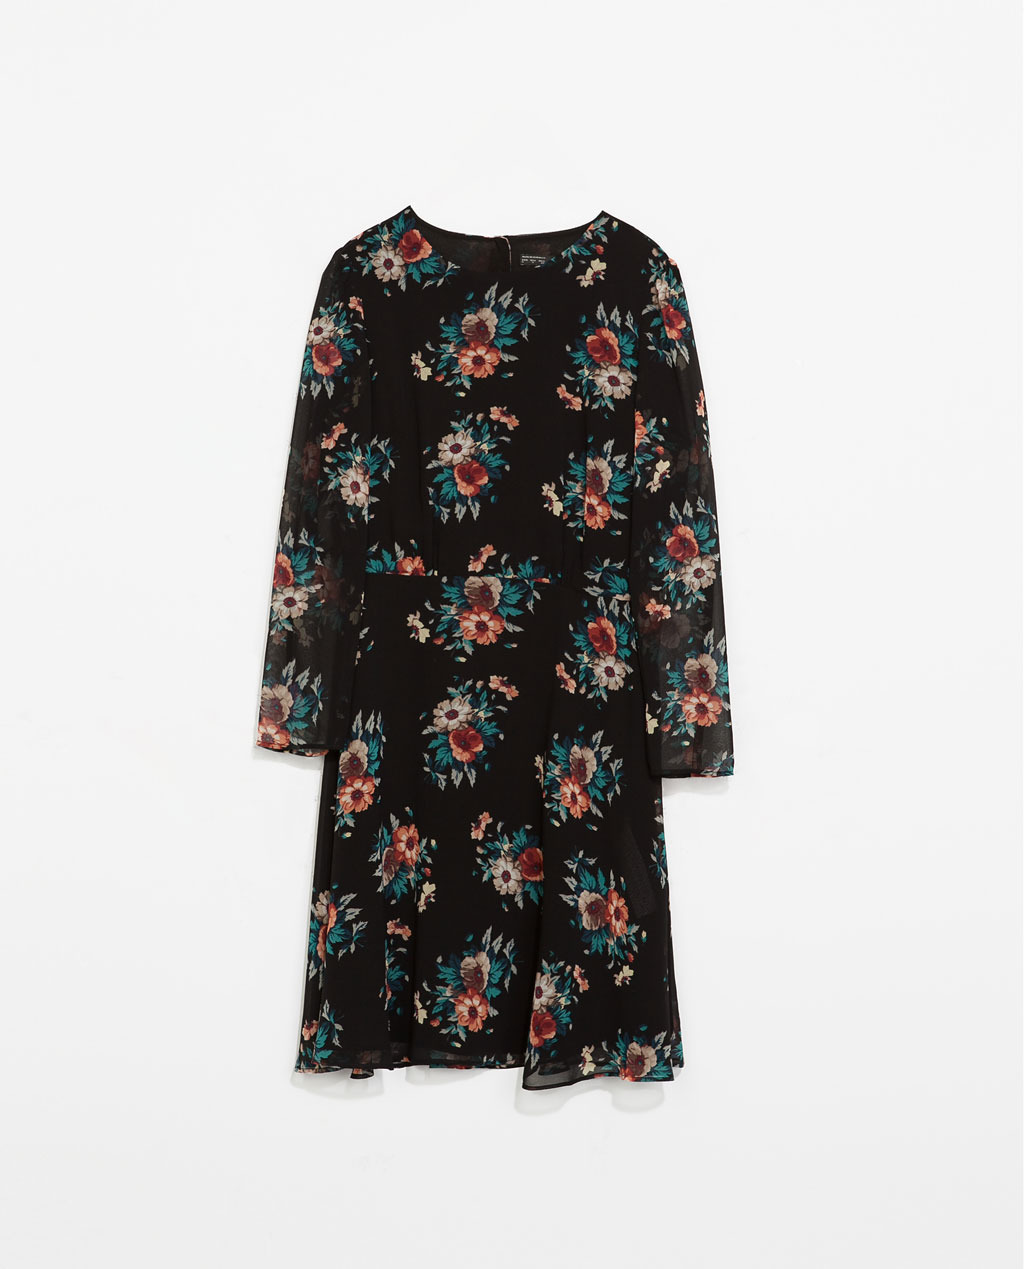 Floral Print Dress - style: shift; neckline: round neck; secondary colour: dark green; predominant colour: black; occasions: casual, evening, holiday, creative work; length: just above the knee; fit: fitted at waist & bust; fibres: polyester/polyamide - 100%; sleeve length: 3/4 length; sleeve style: standard; texture group: sheer fabrics/chiffon/organza etc.; pattern type: fabric; pattern size: standard; pattern: florals; trends: furious florals; season: s/s 2014